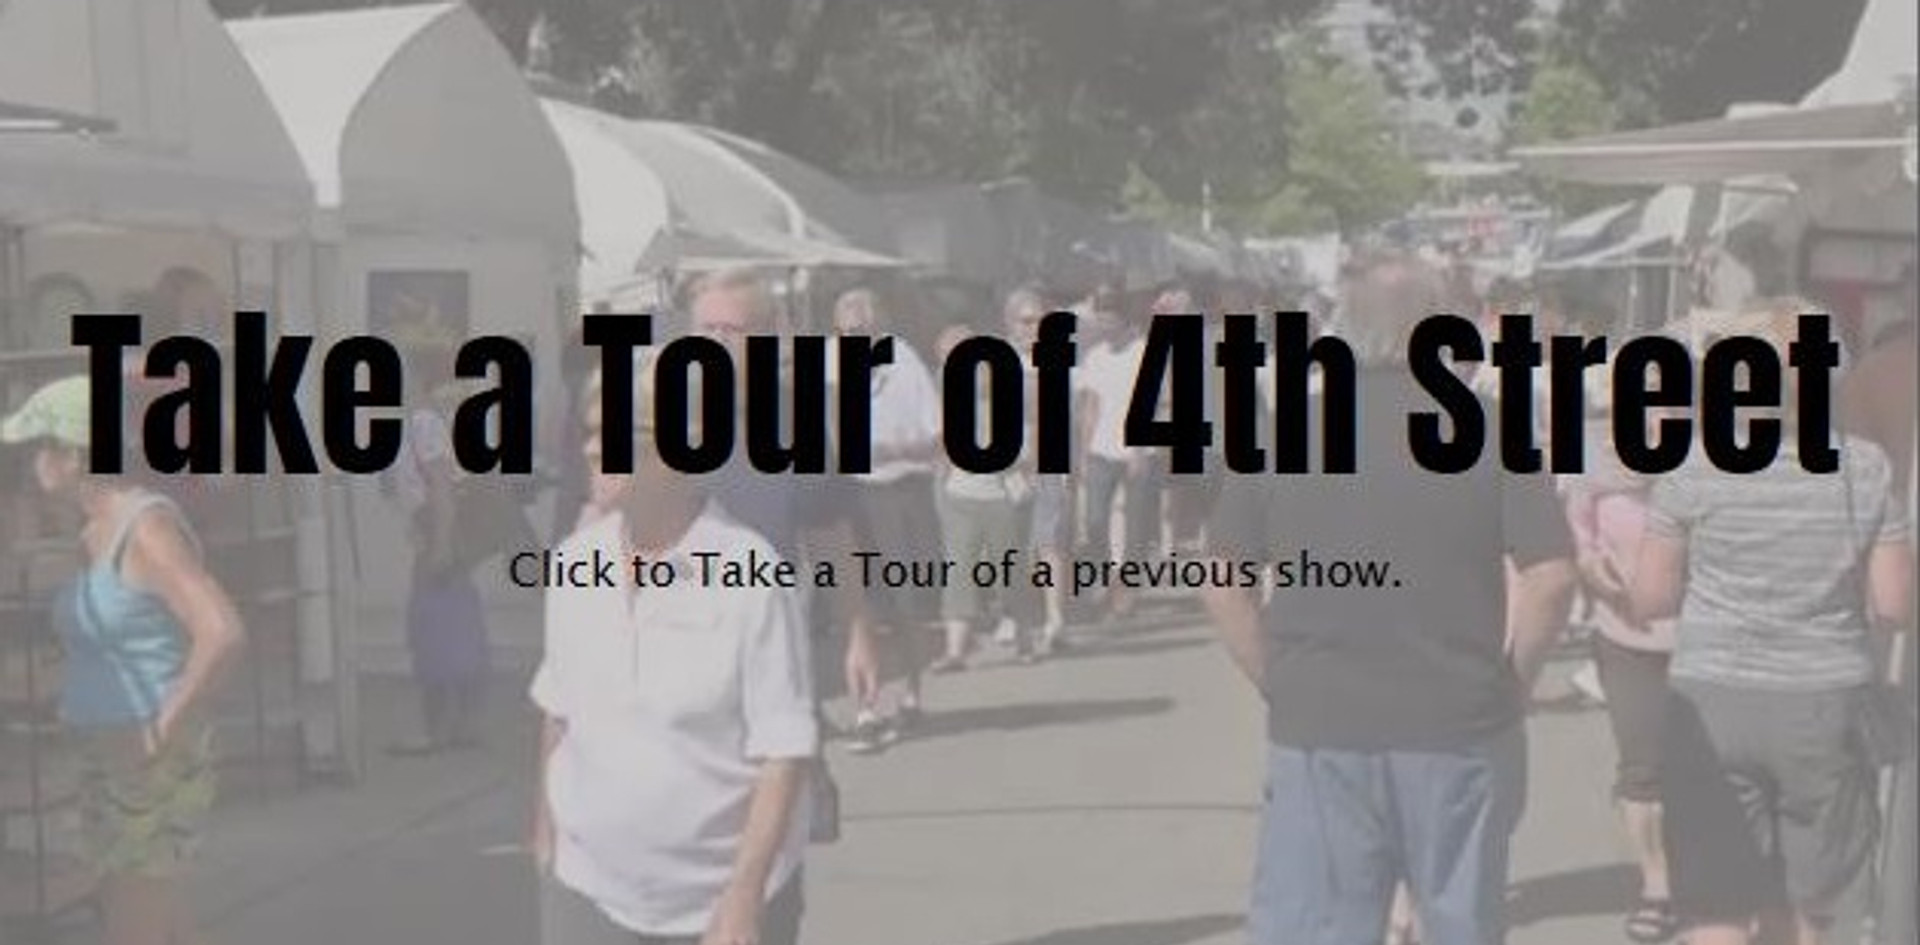 Take a Tour of 4th Street